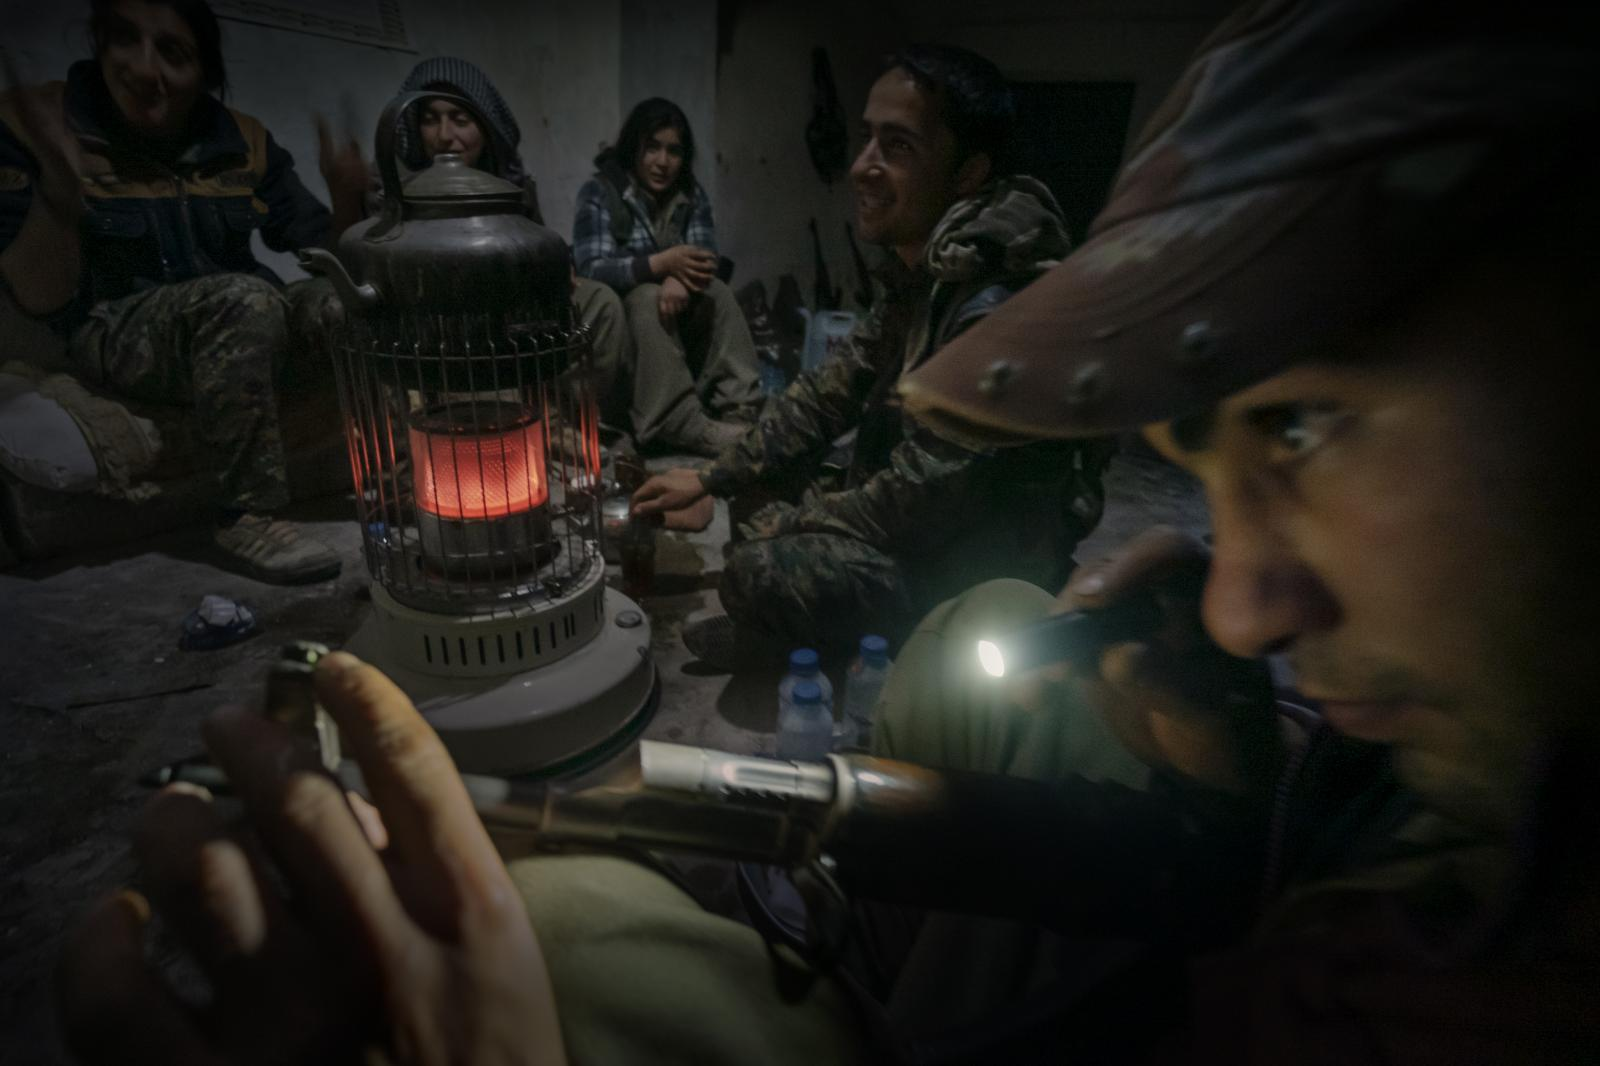 Members of the Kurdistan Workers' Party (PKK), Free Women's Units, Kurdistan Workers' Party (YJA STAR) and the Marxist-Leninist Communist Party of Turkey (MLKP) during the night, in a position a few yards away from ISIS fighters in the battle of Sinjar, from where they could distinctly hear the calls to morning prayers prior to the daily fighting (Iraq, 2015)